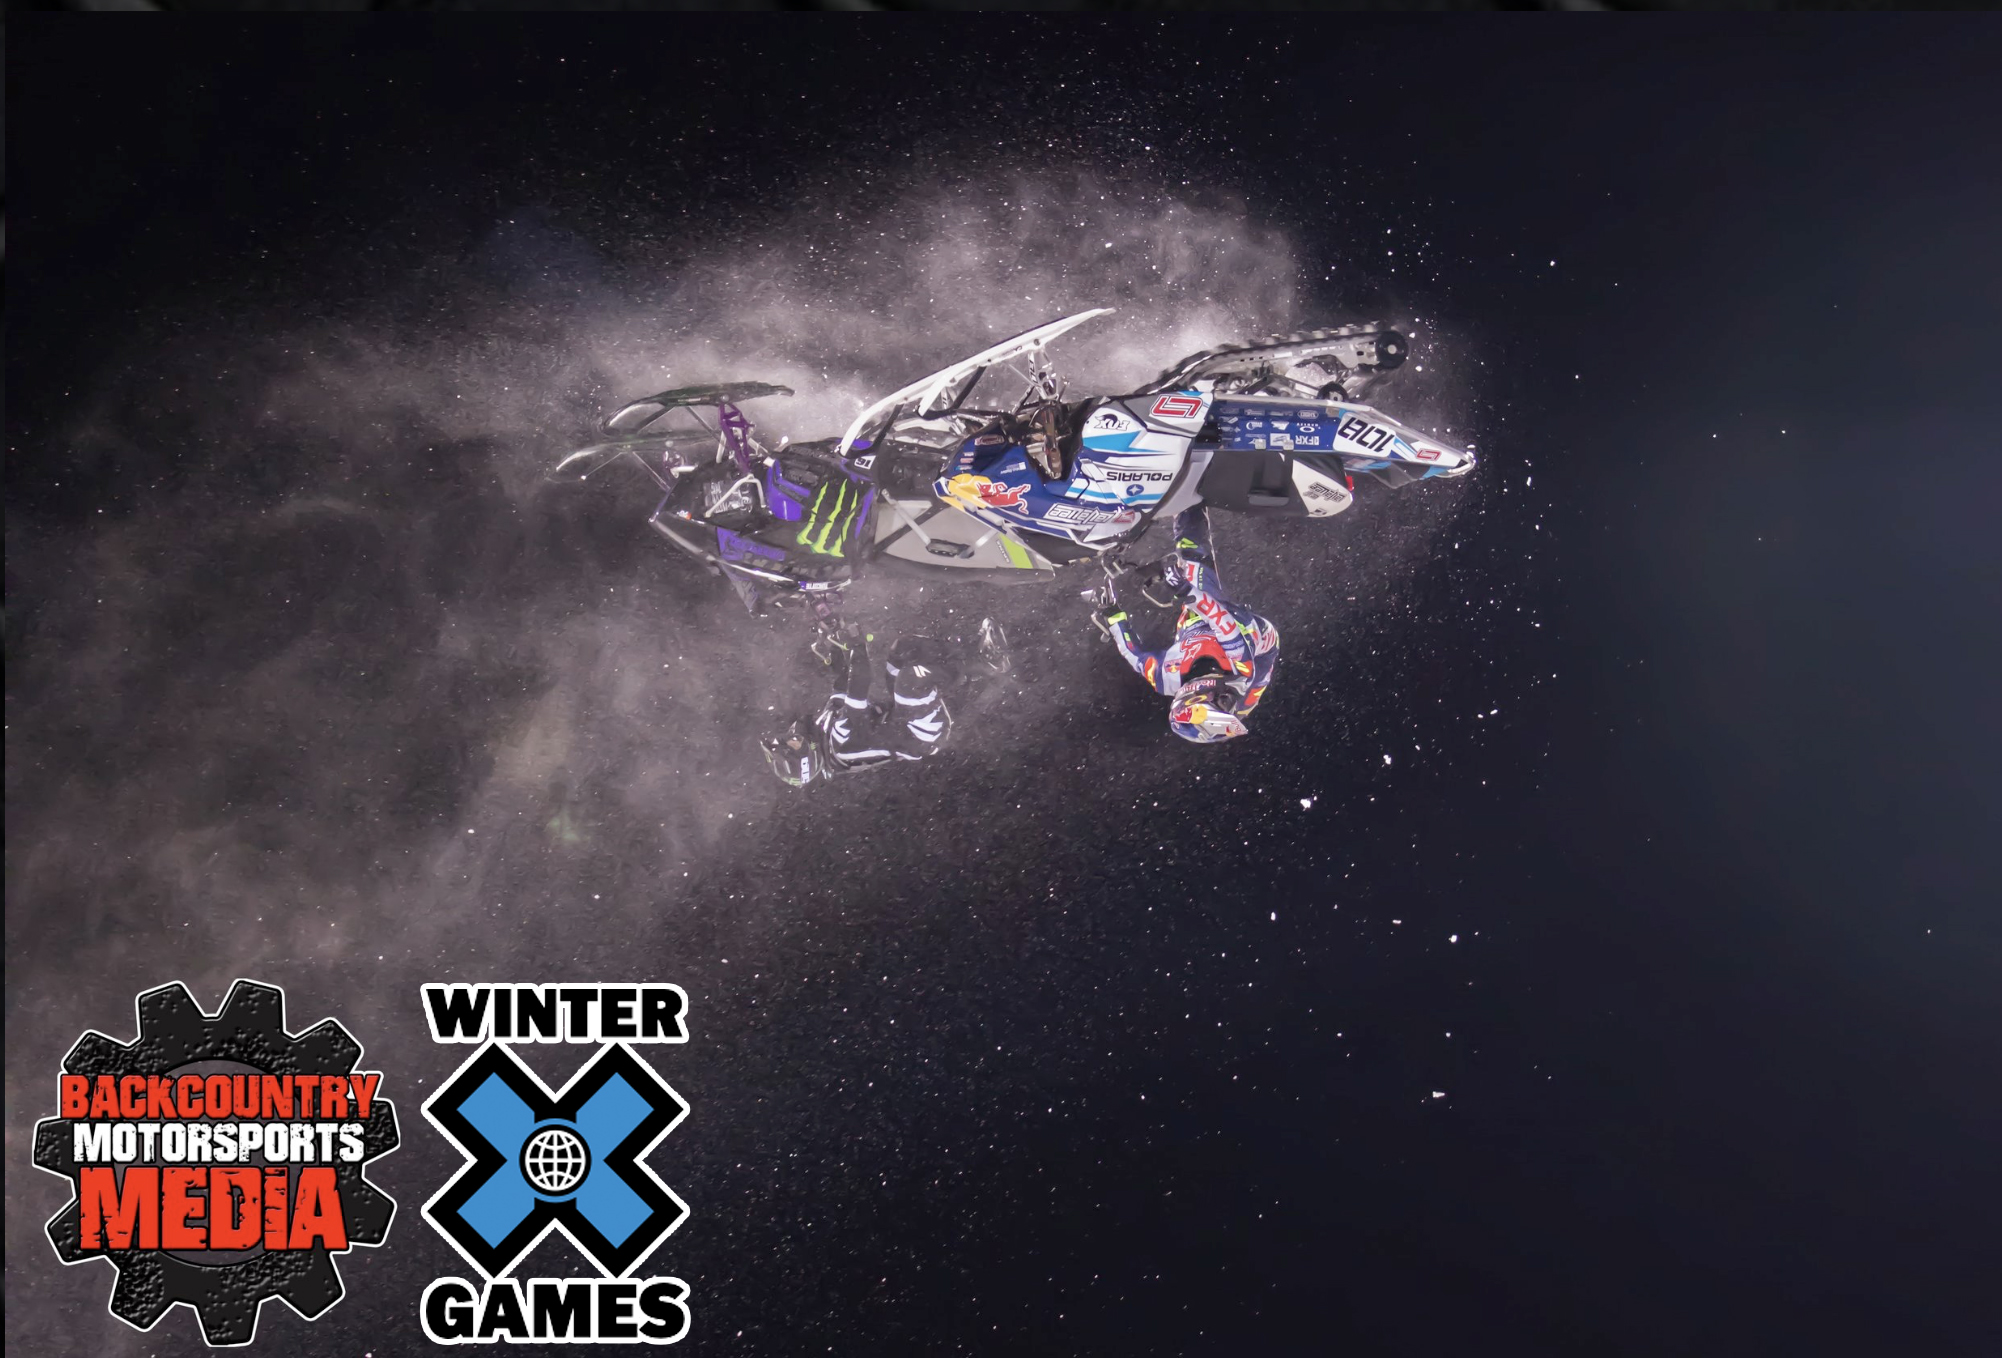 Winter X Games - 2018